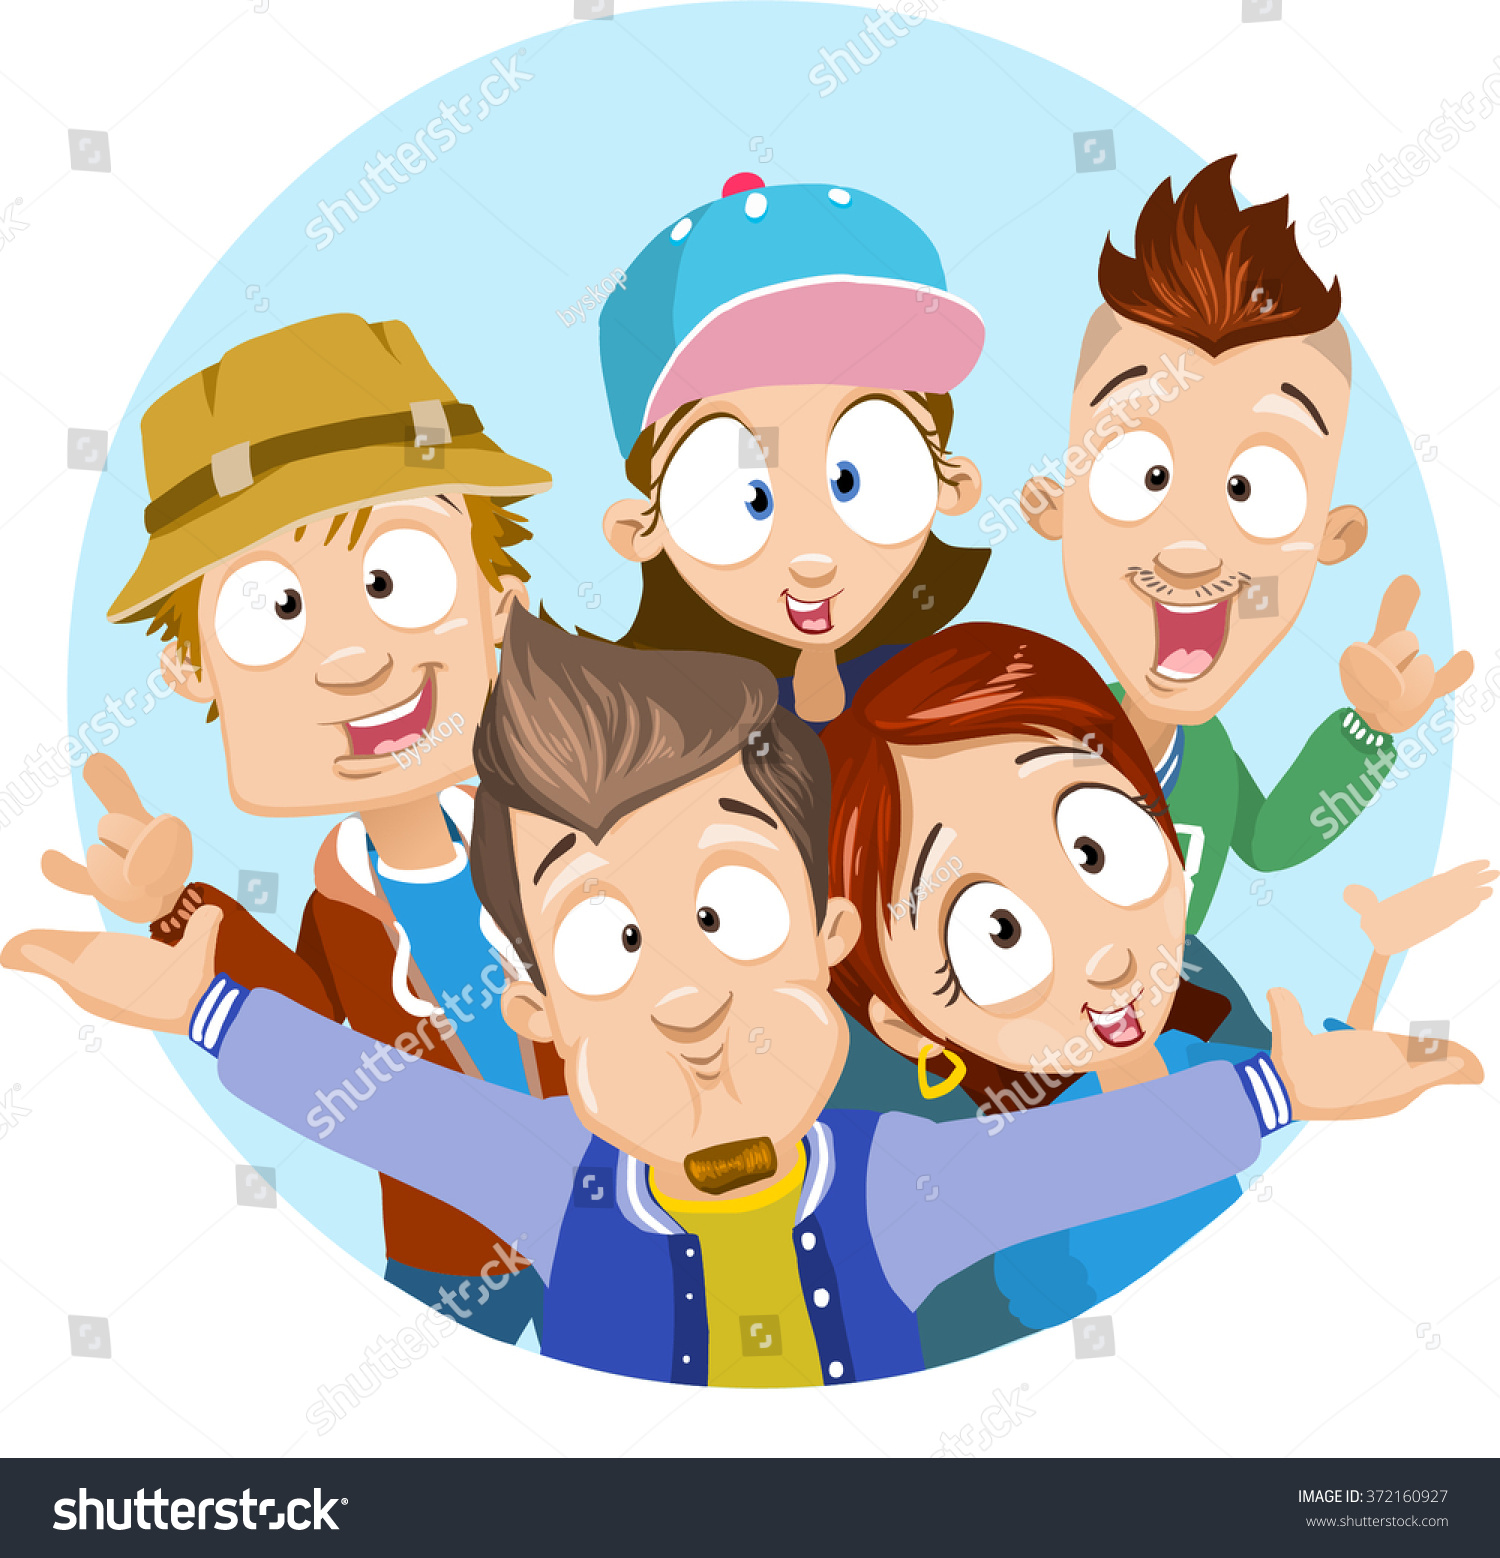 Group of friends having fun clipart 8 » Clipart Station.